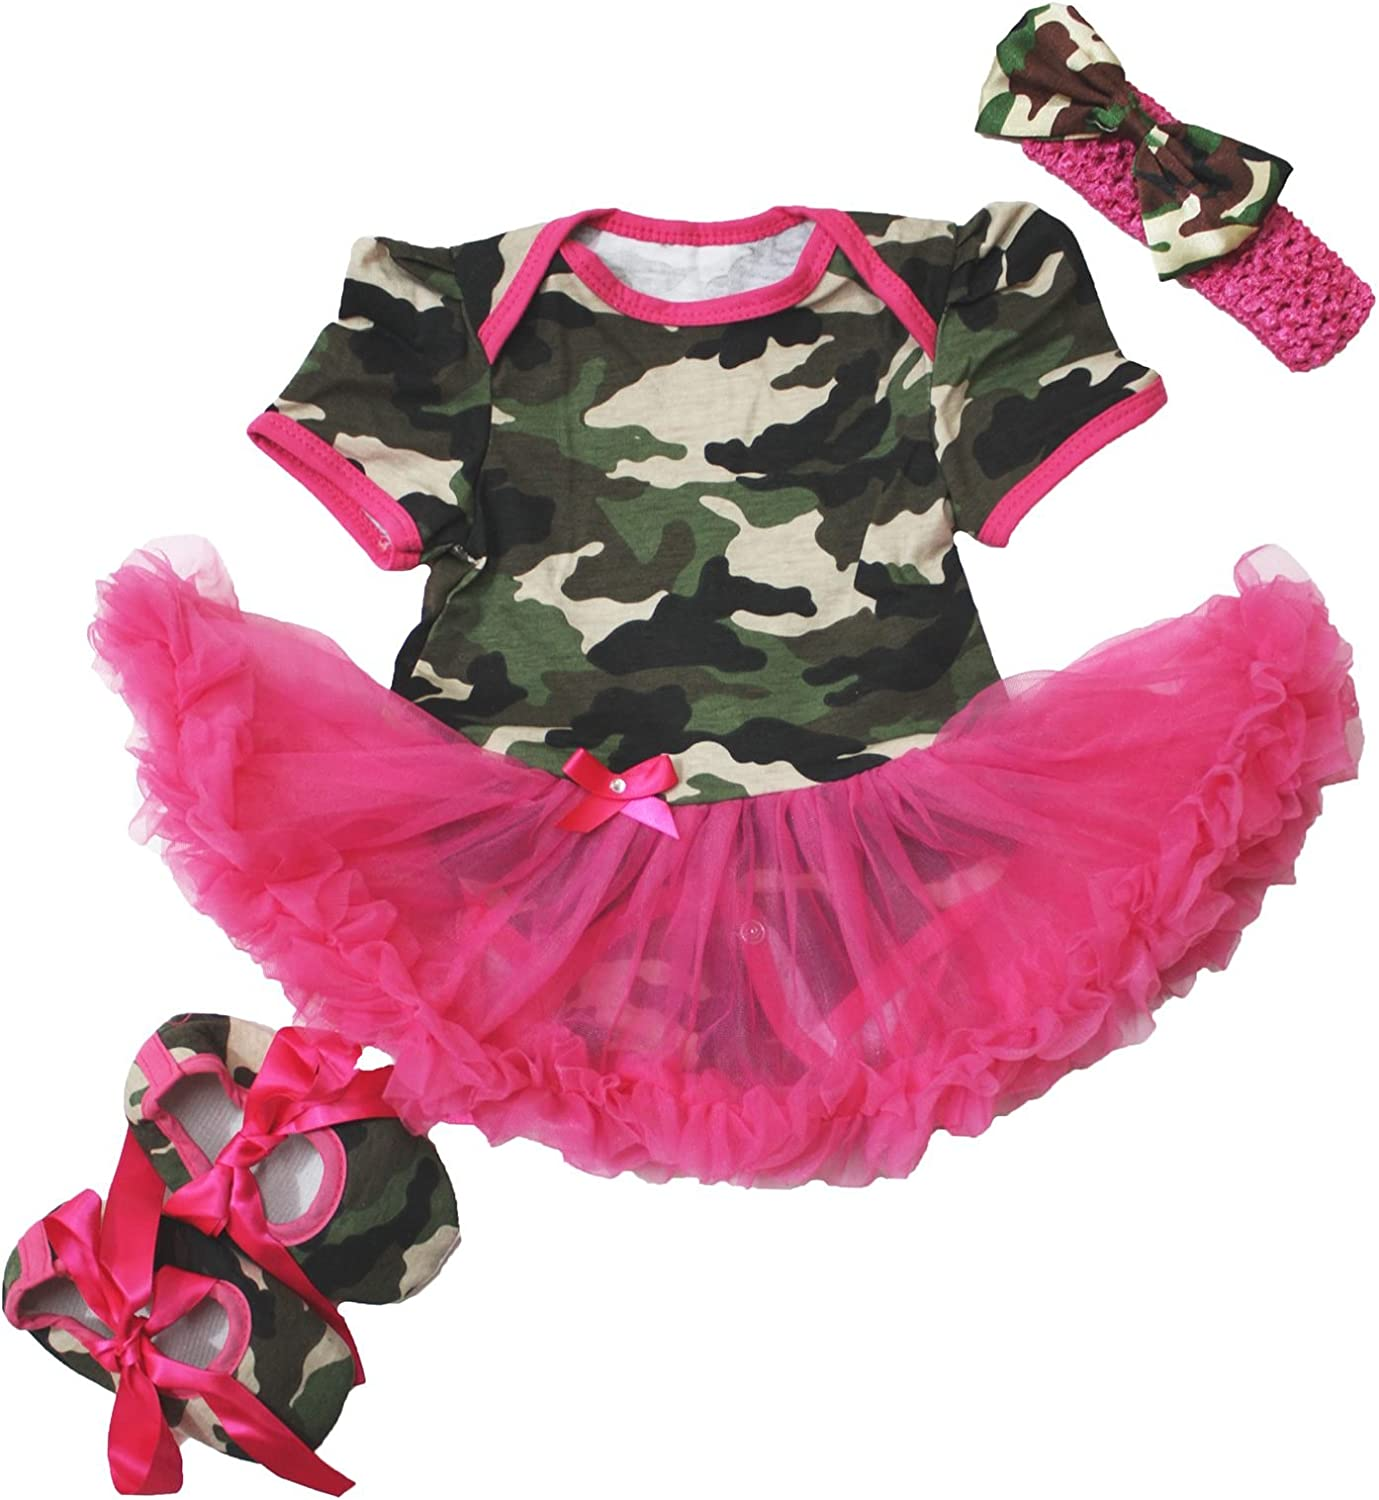 3-6month Camouflage Hot Pink Bodysuit Jumpsuit Romper Girl Cloth Baby Dress Shoes Nb-18m